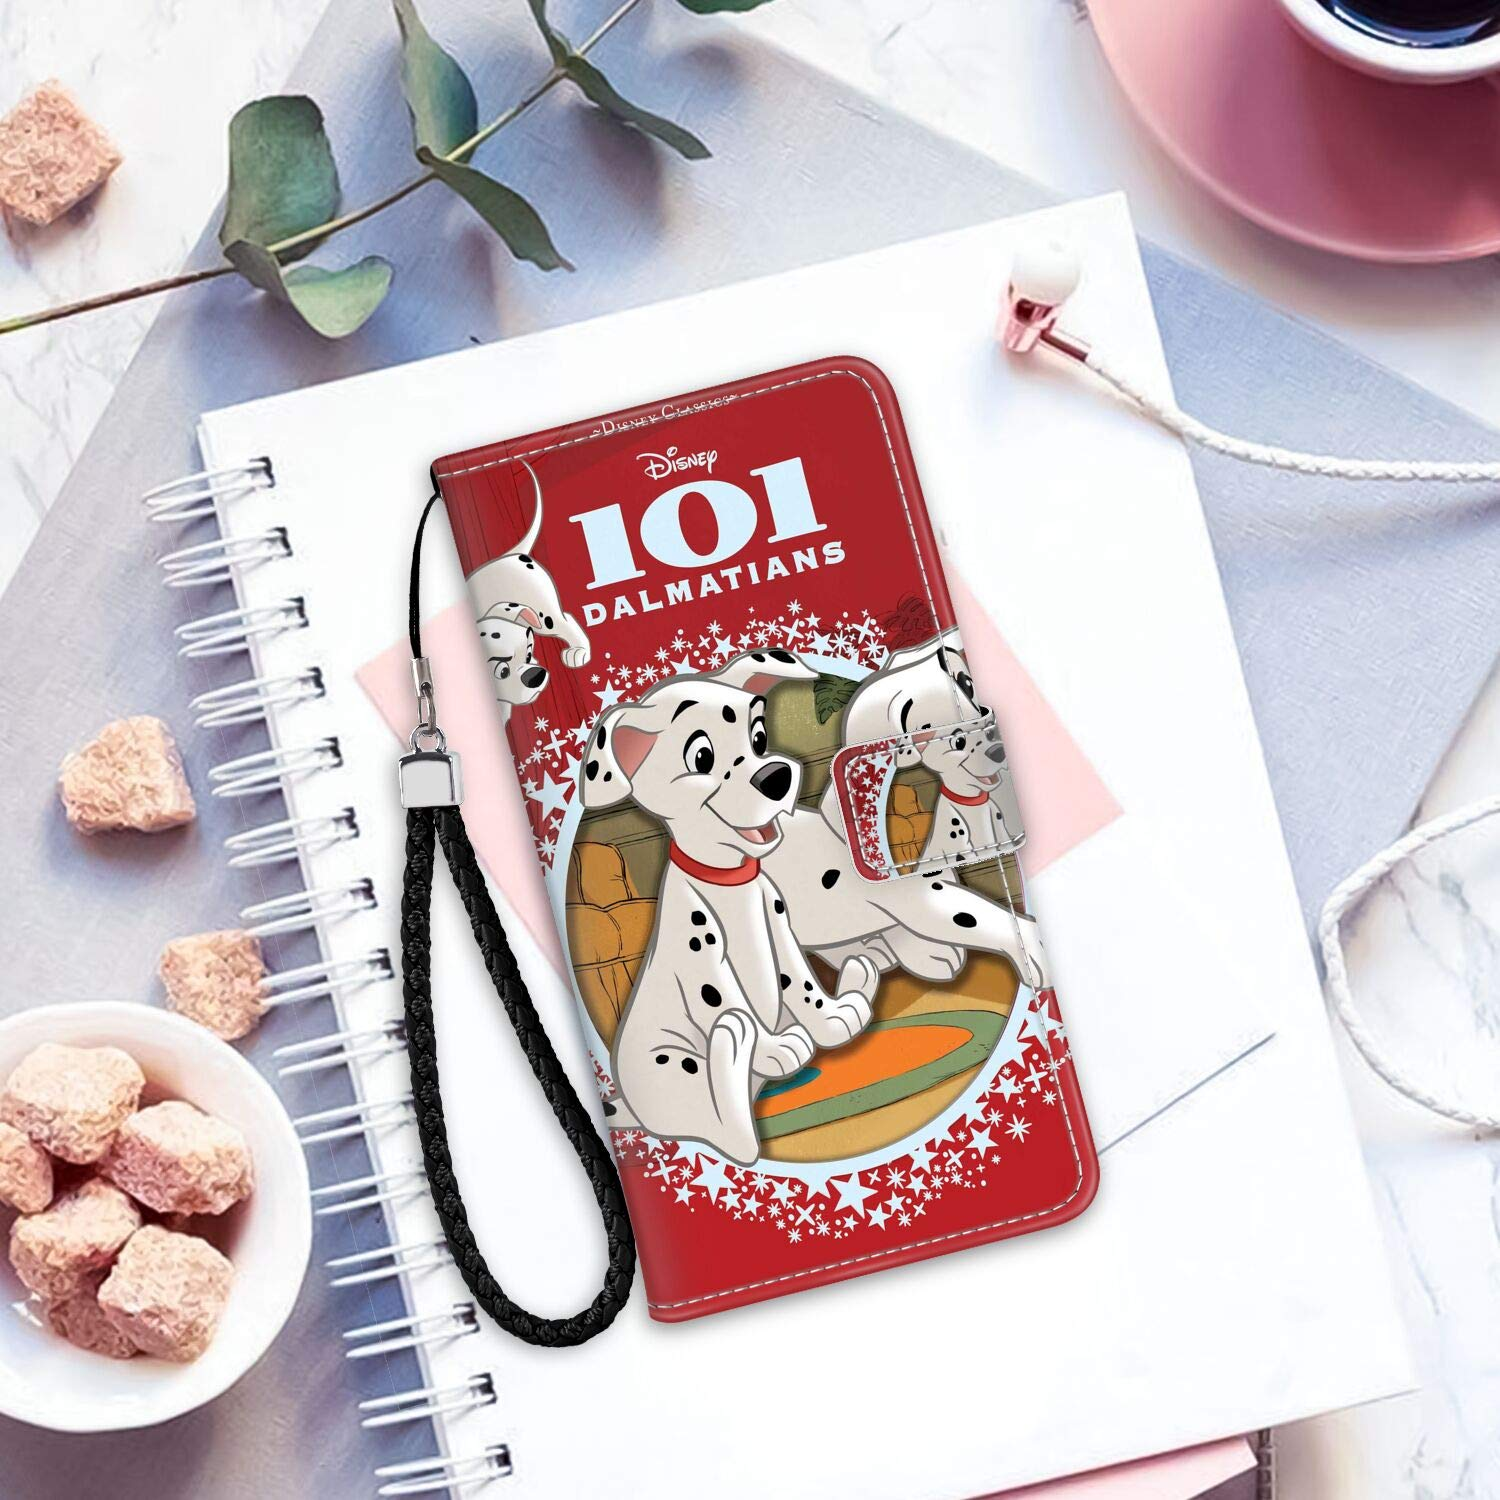 DISNEY COLLECTION 101 Small Dalmatians Wallet Case with Card Holder Compatible for Apple iPhone 10 or iPhone Xs or iPhone X [5.8 Version] Sturdy